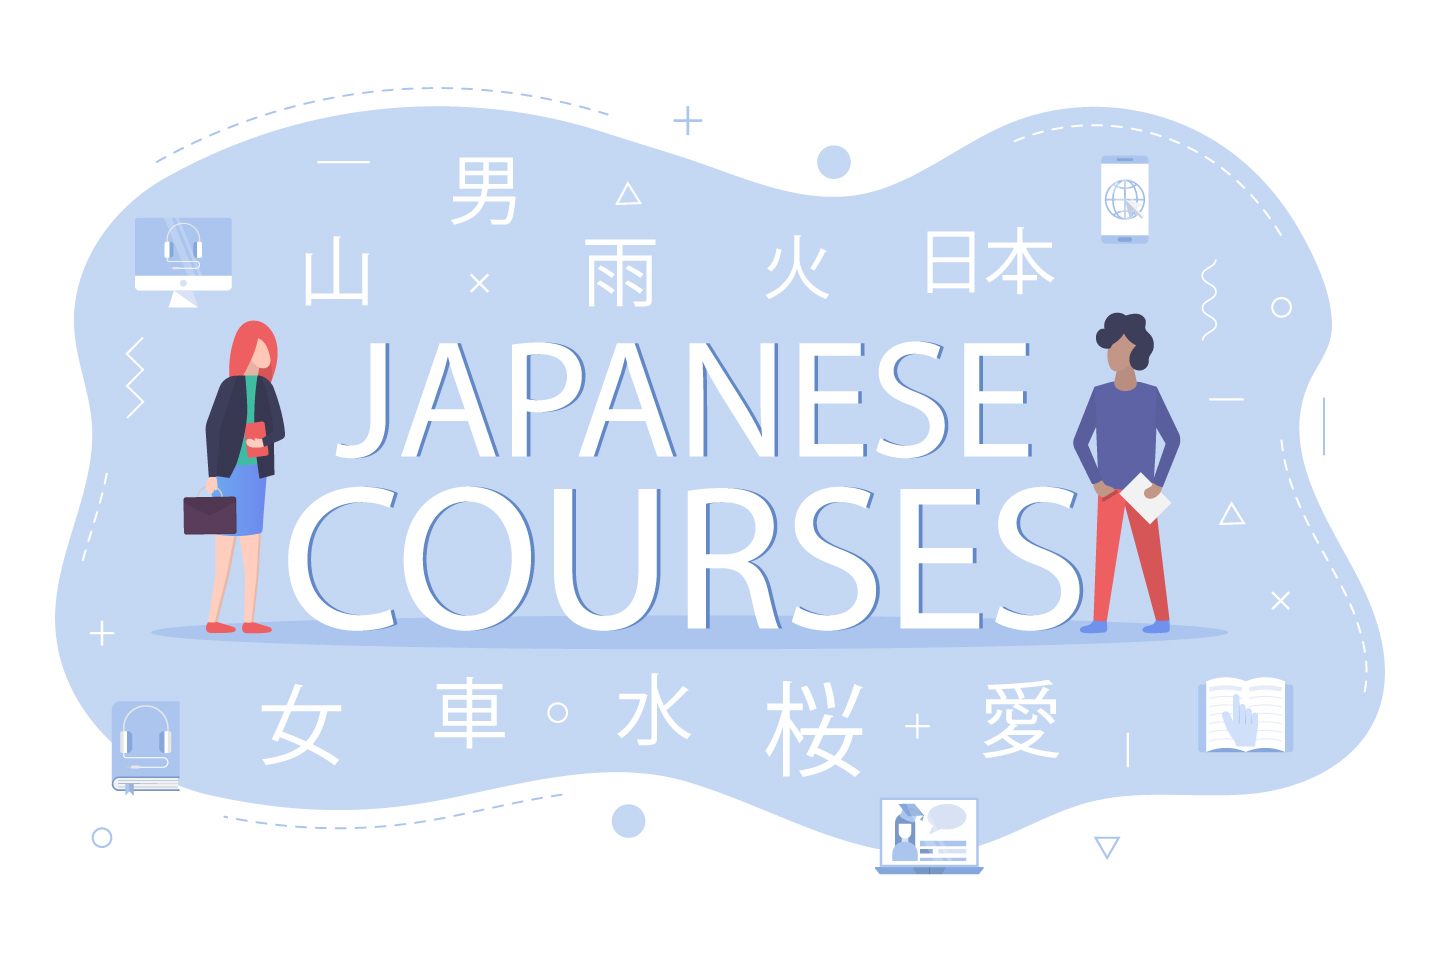 Japanese Courses Vector Design